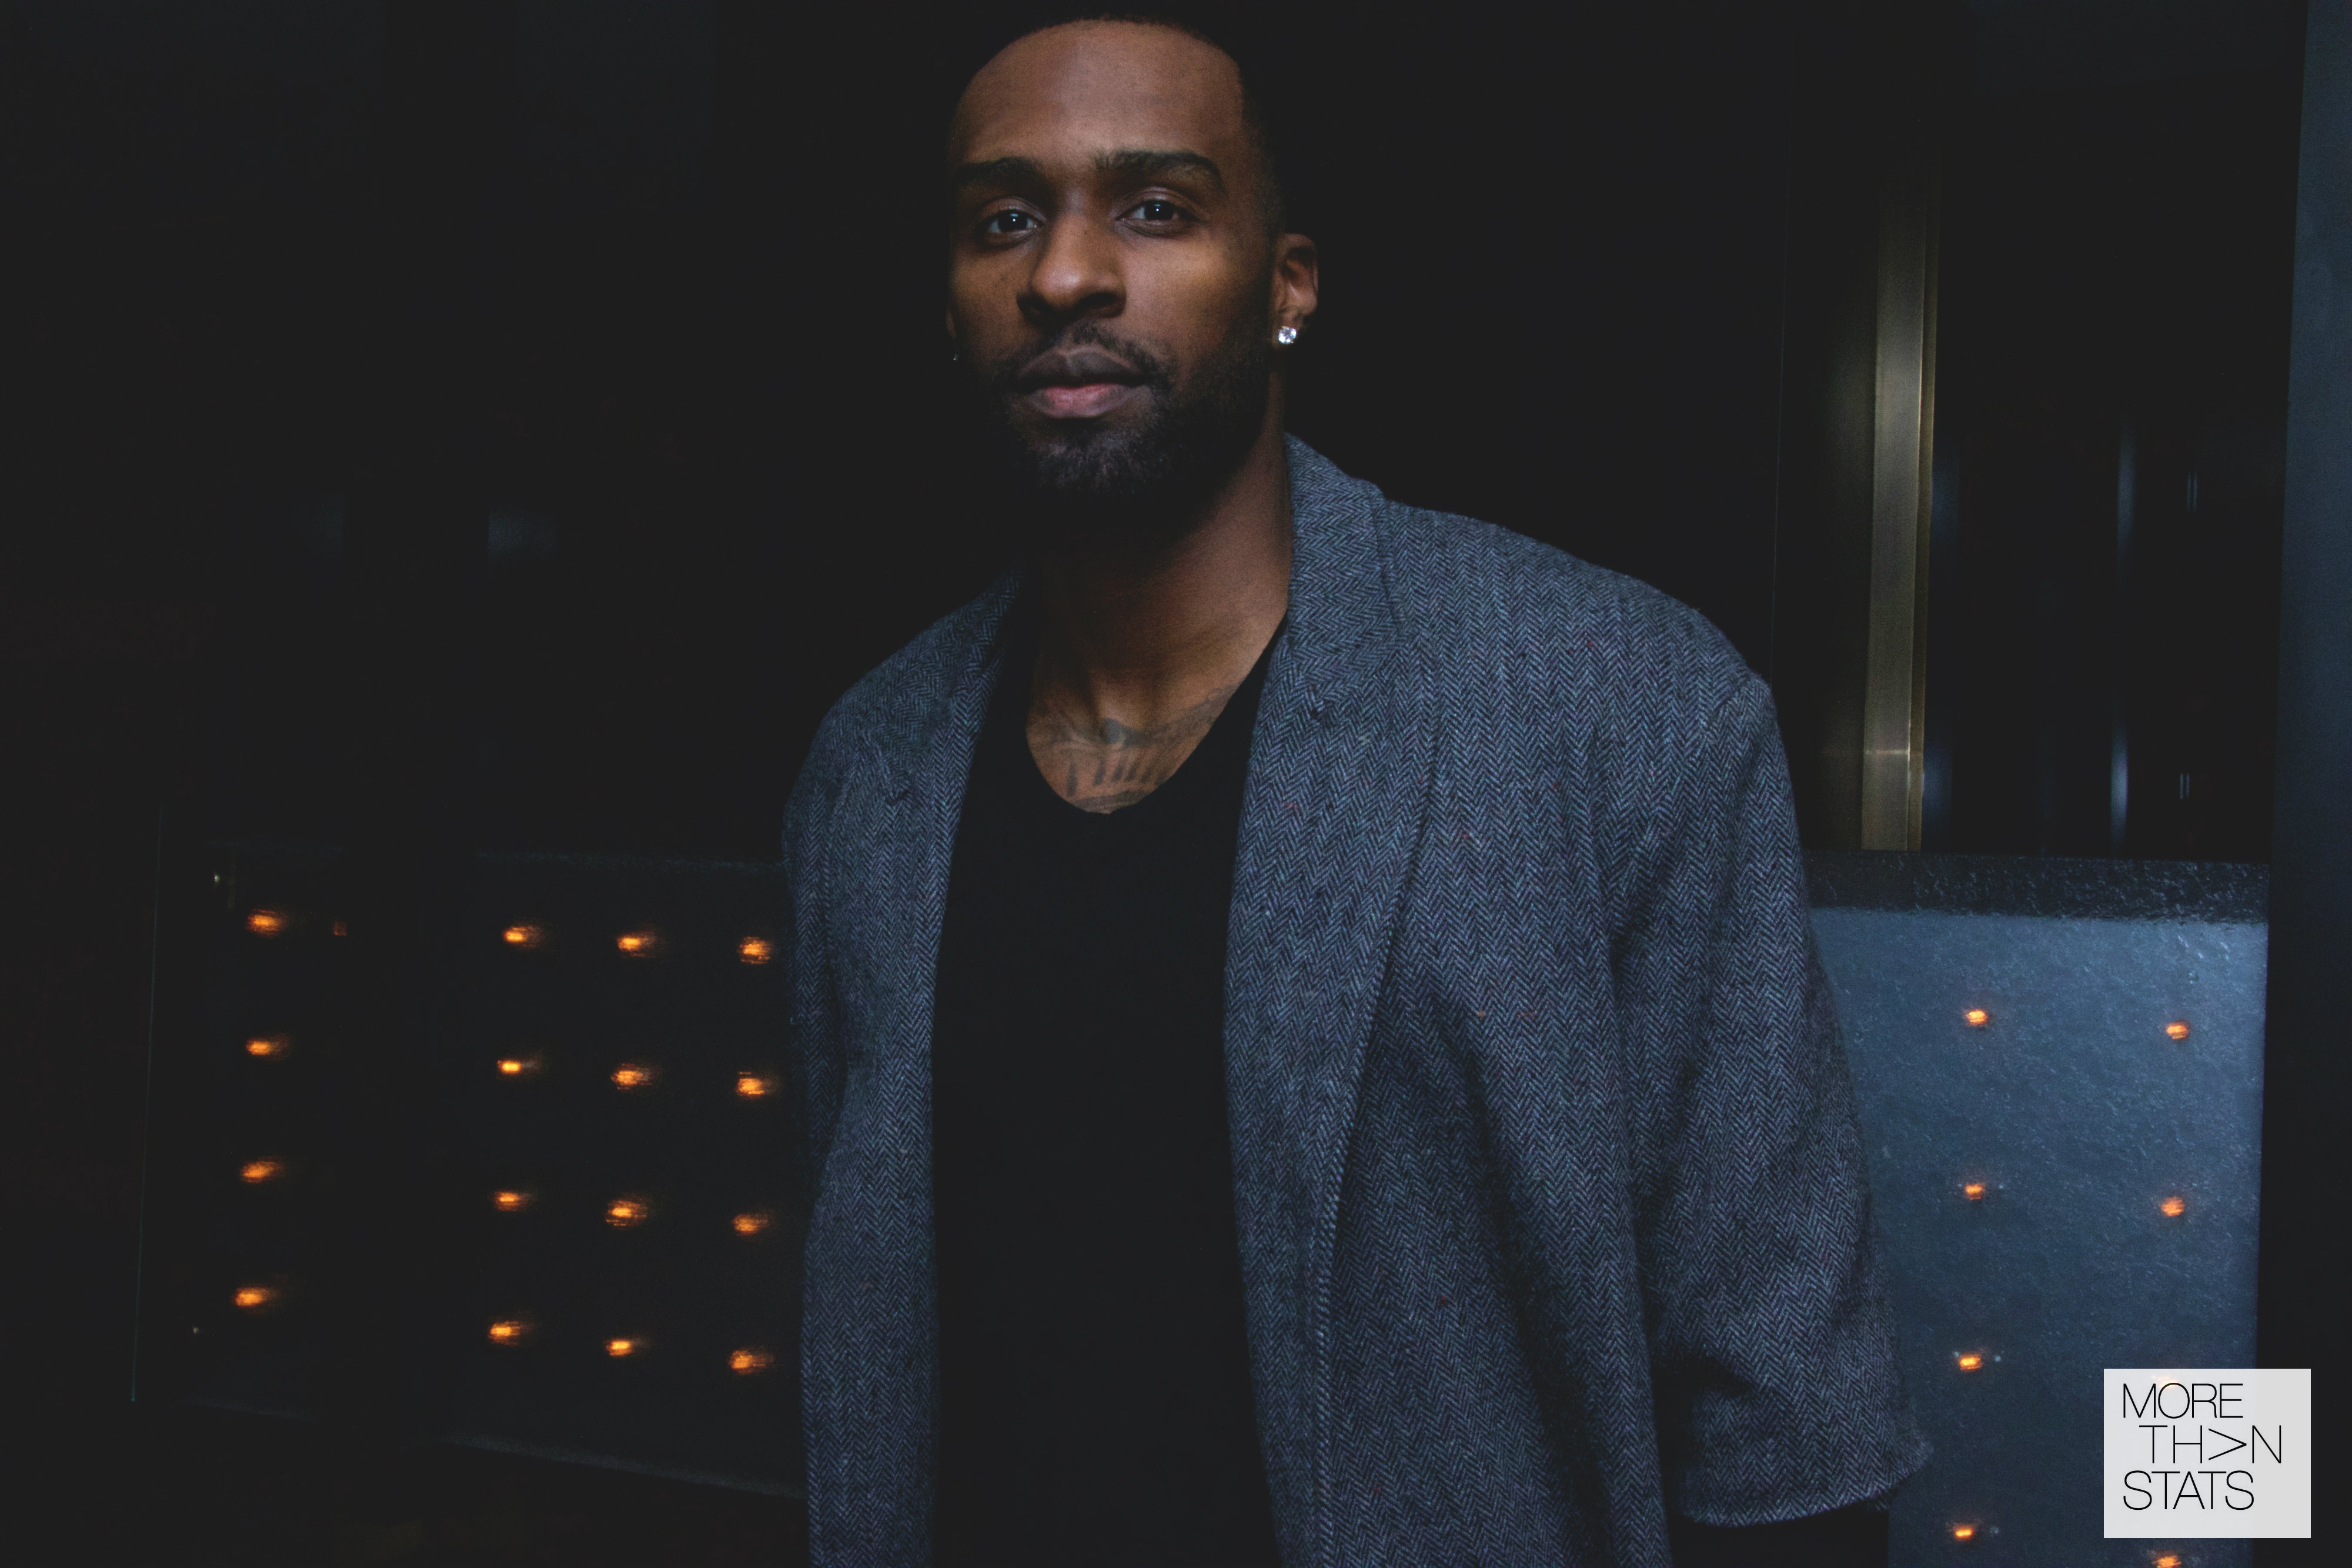 Interview: Shabazz Muhammad Has An Eye For Style, Shares Favorite Fashion Designers, Trends He doesn't like, And More